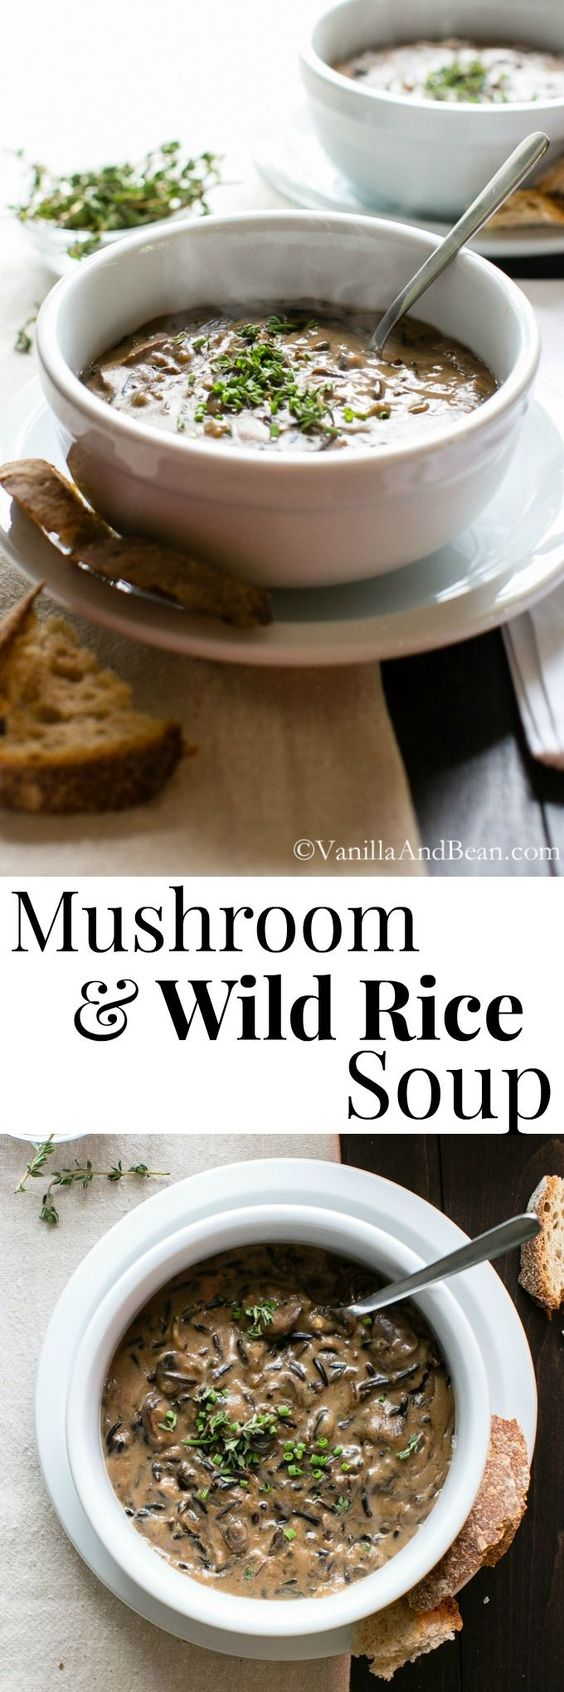 Wild rice soup, Rice soup and Creamy mushrooms on Pinterest